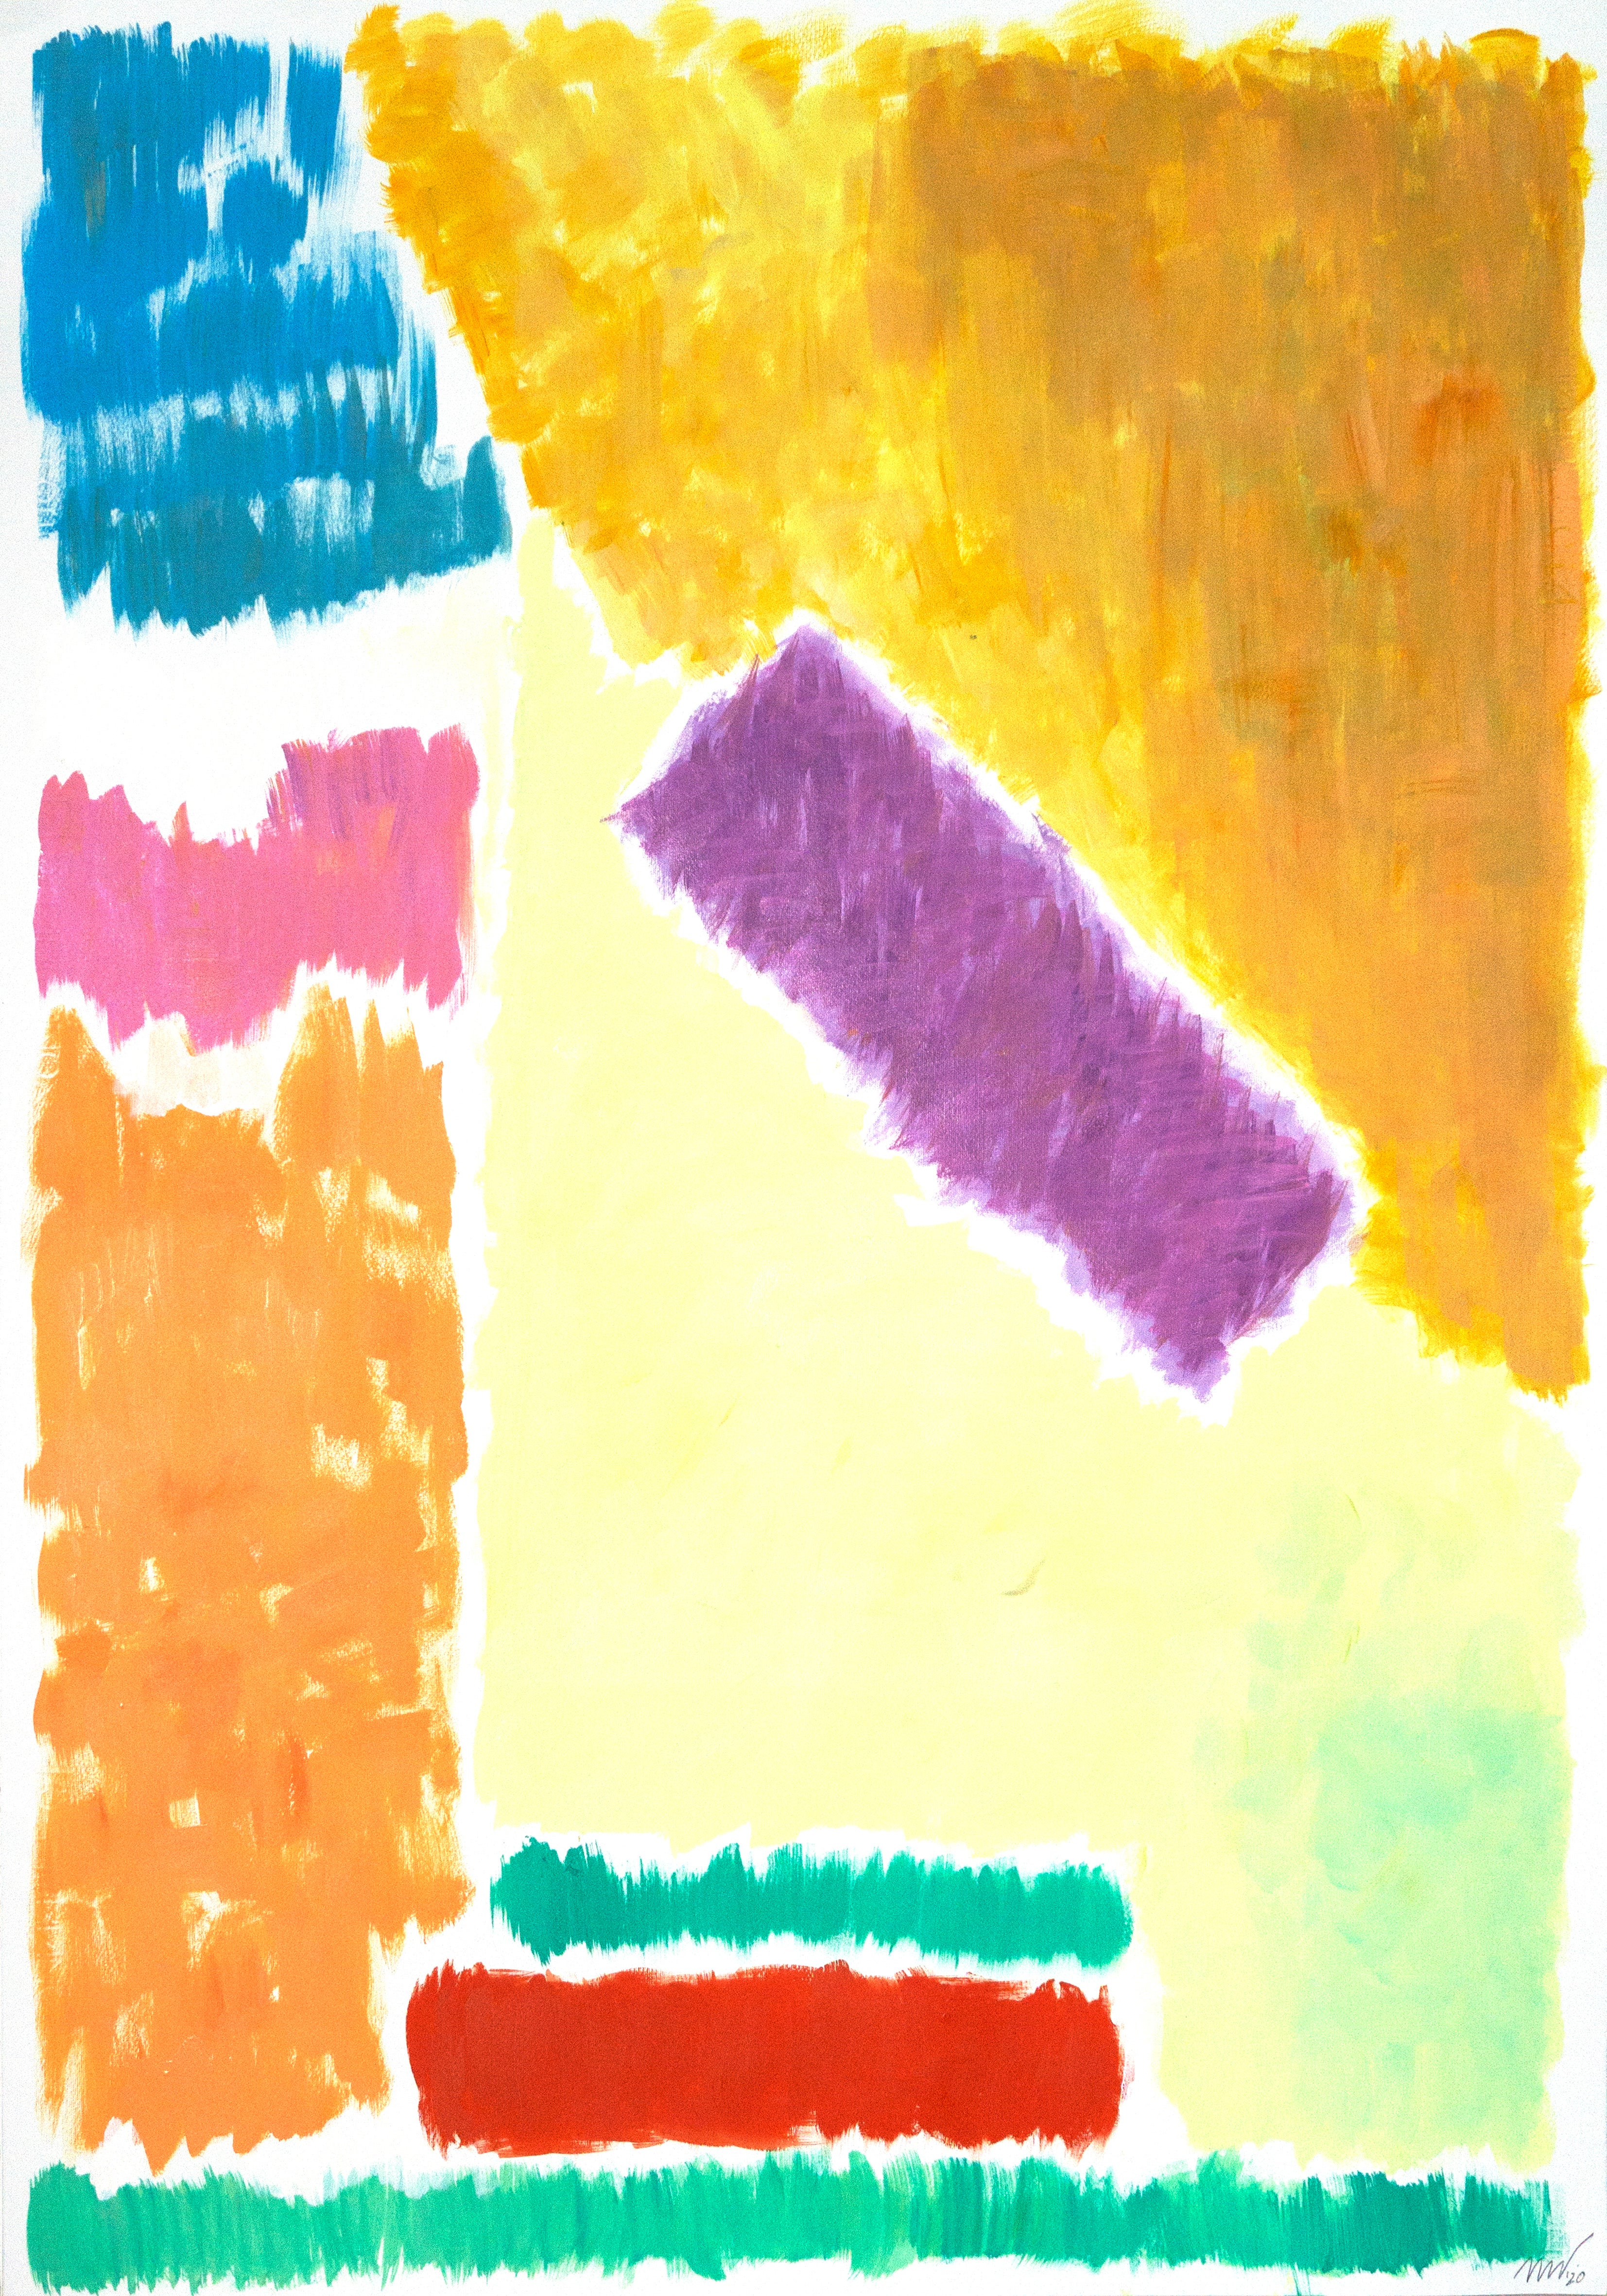 Pastel Geometric Landscape, Contemporary Painting on Paper, 70's Inspiration